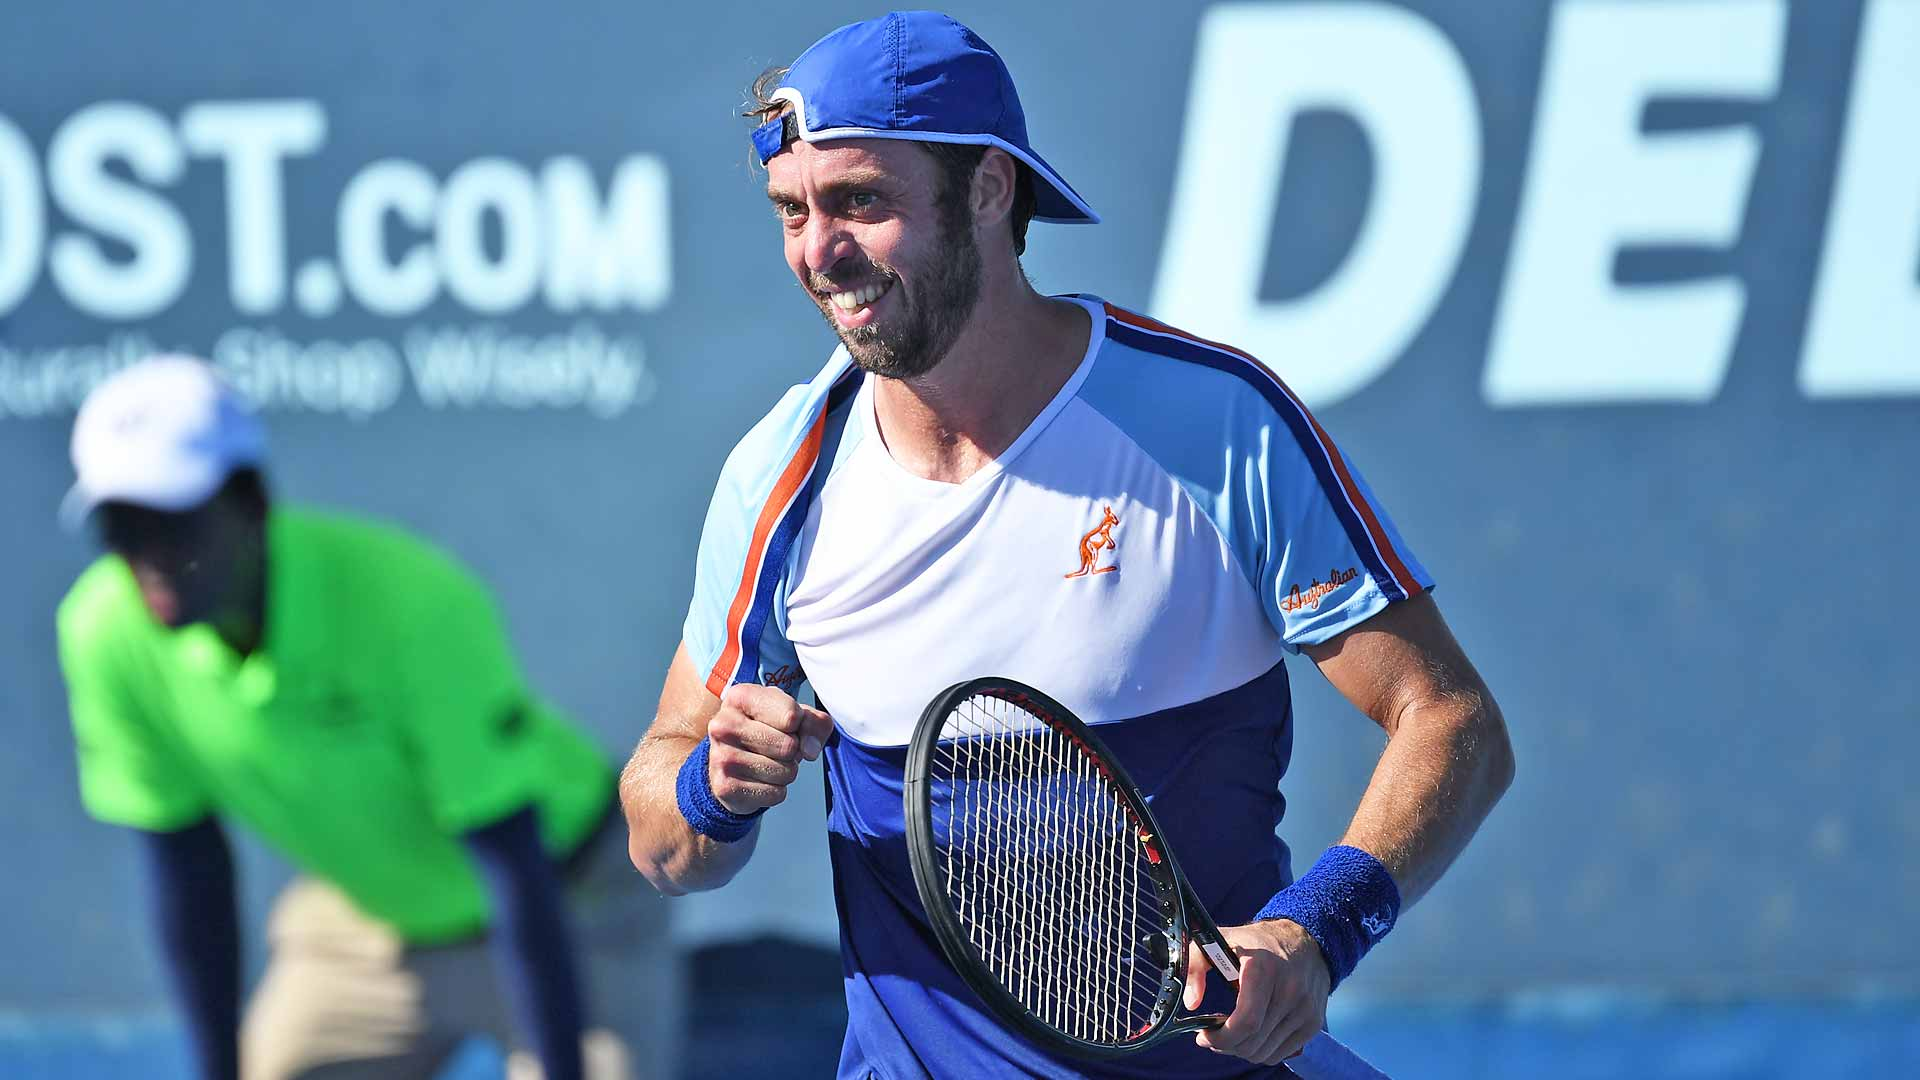 Paolo Lorenzi pumps his fist during his first-round win at the Delray Beach Open presented by VITACOST.com.